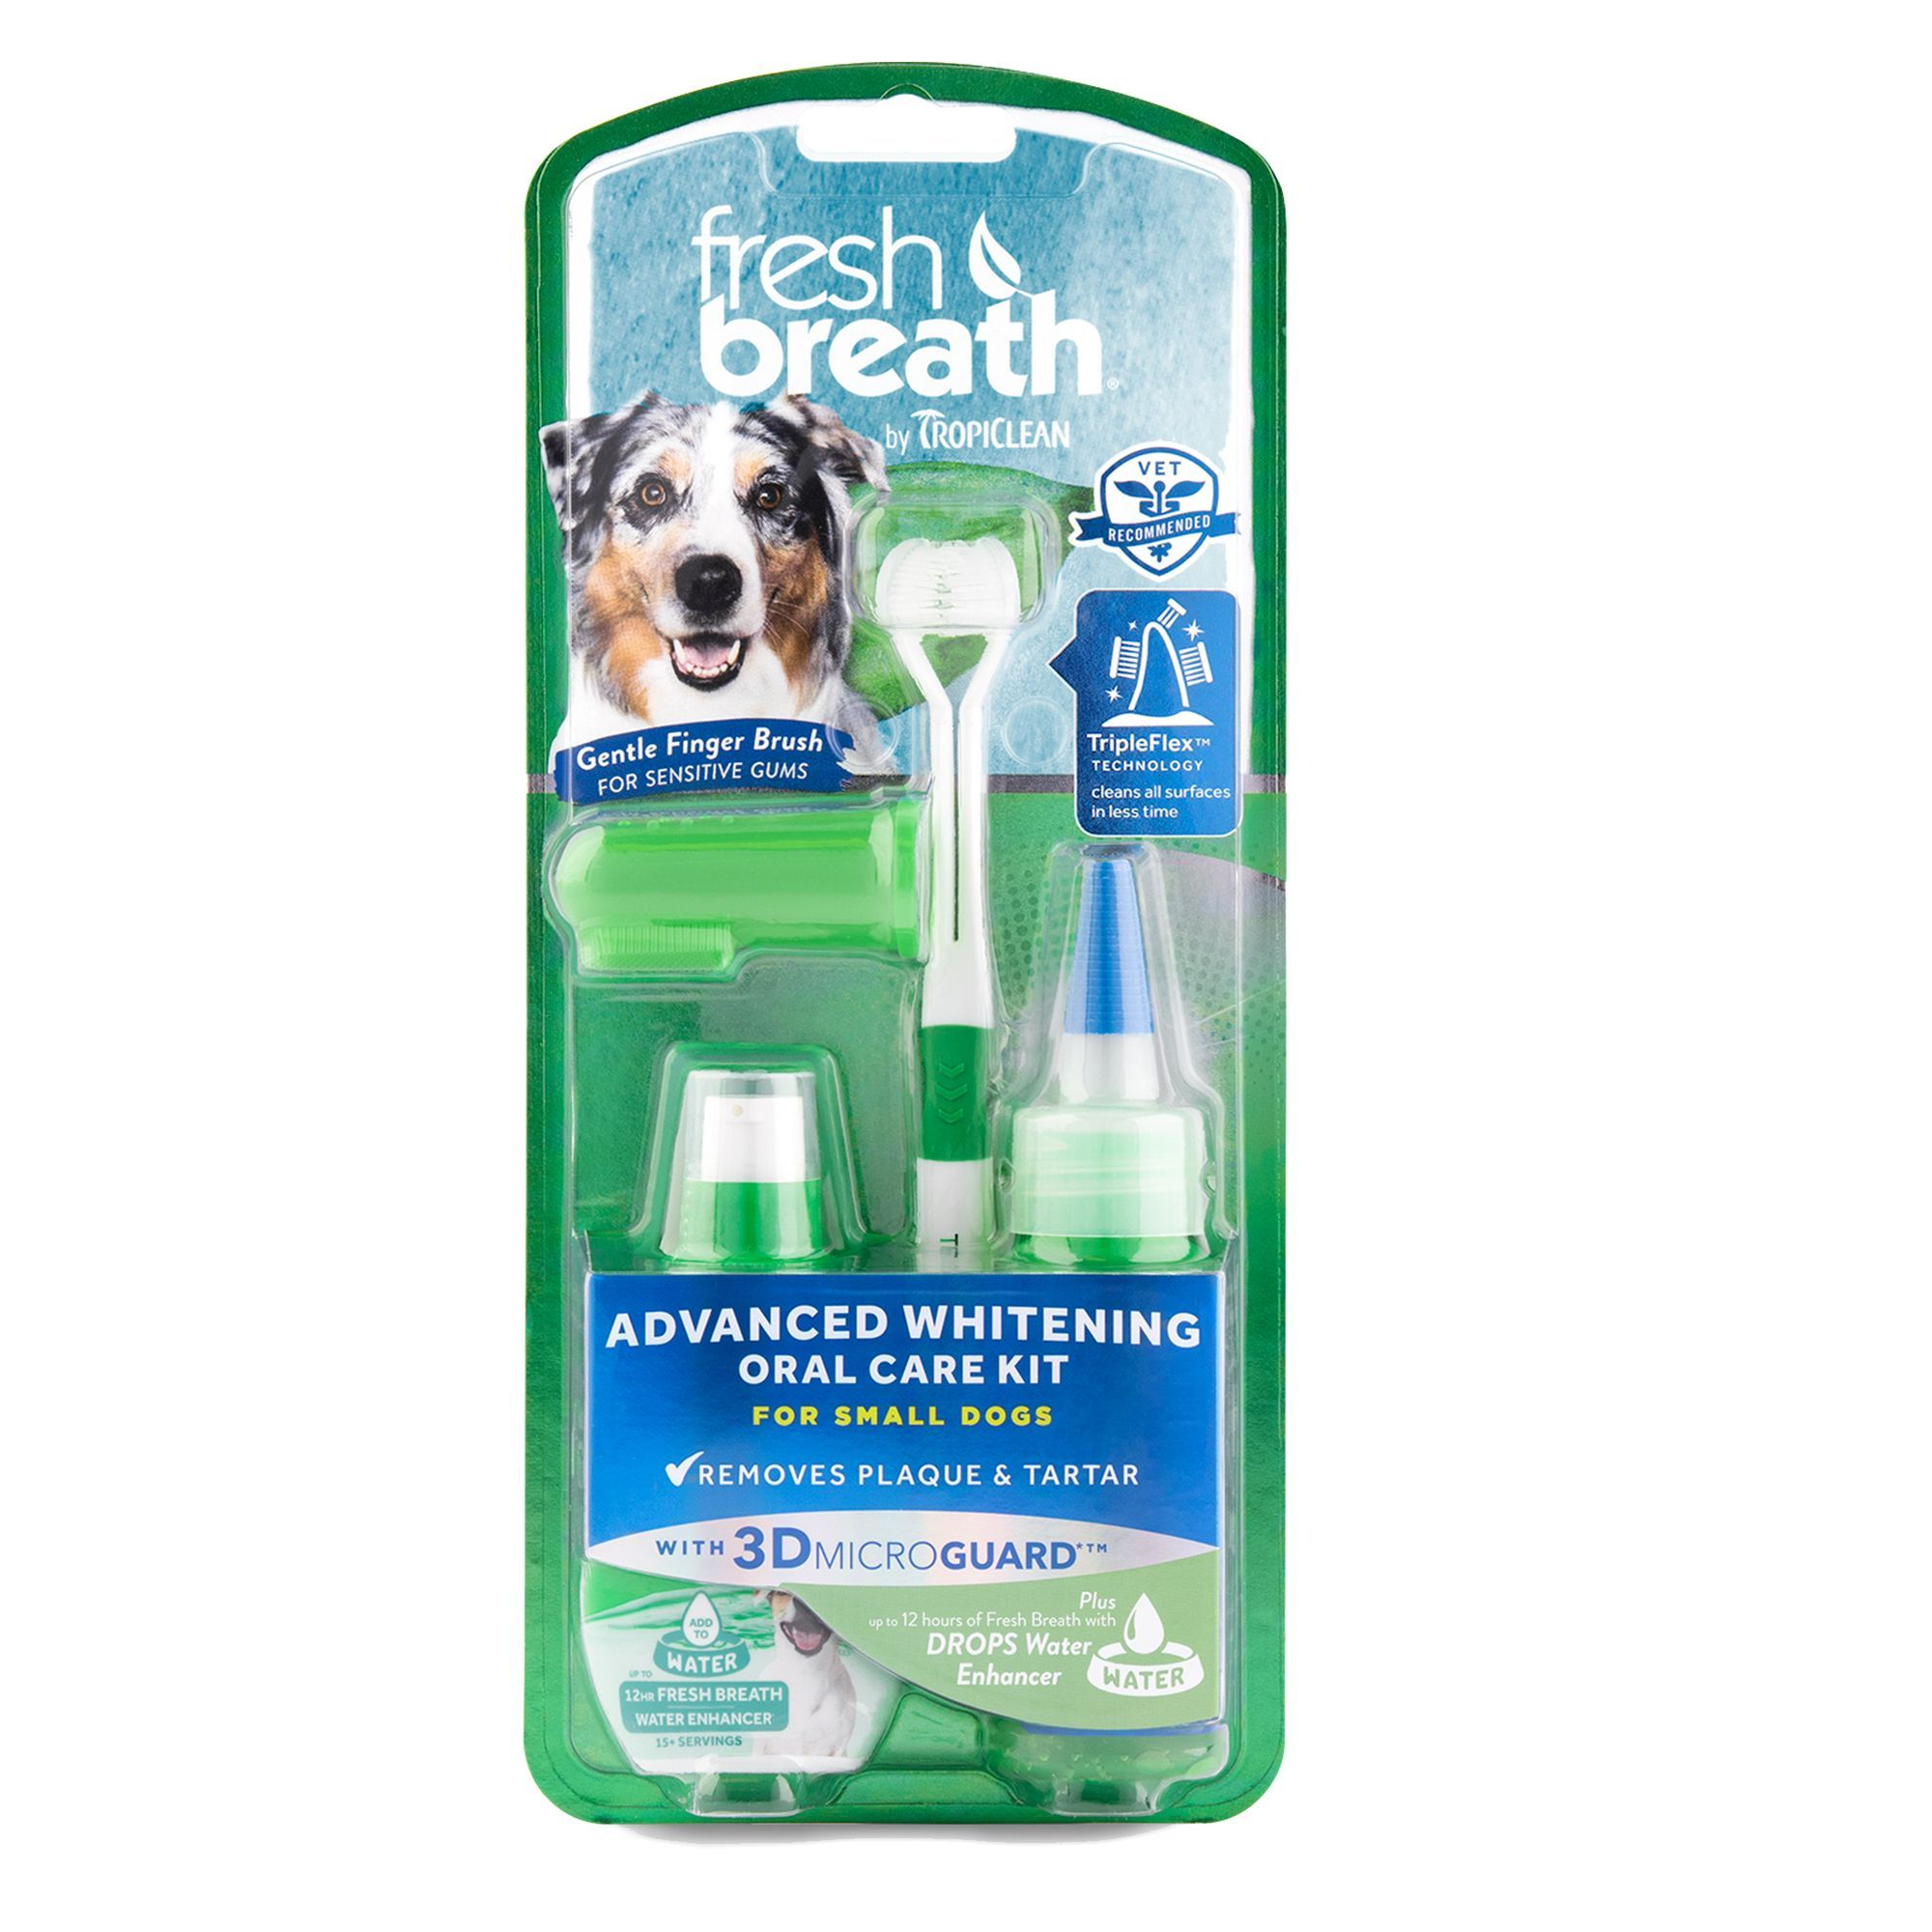 TropiClean® Fresh Breath® Advanced Whitening Small Dog Oral Care Kit #dentalcare